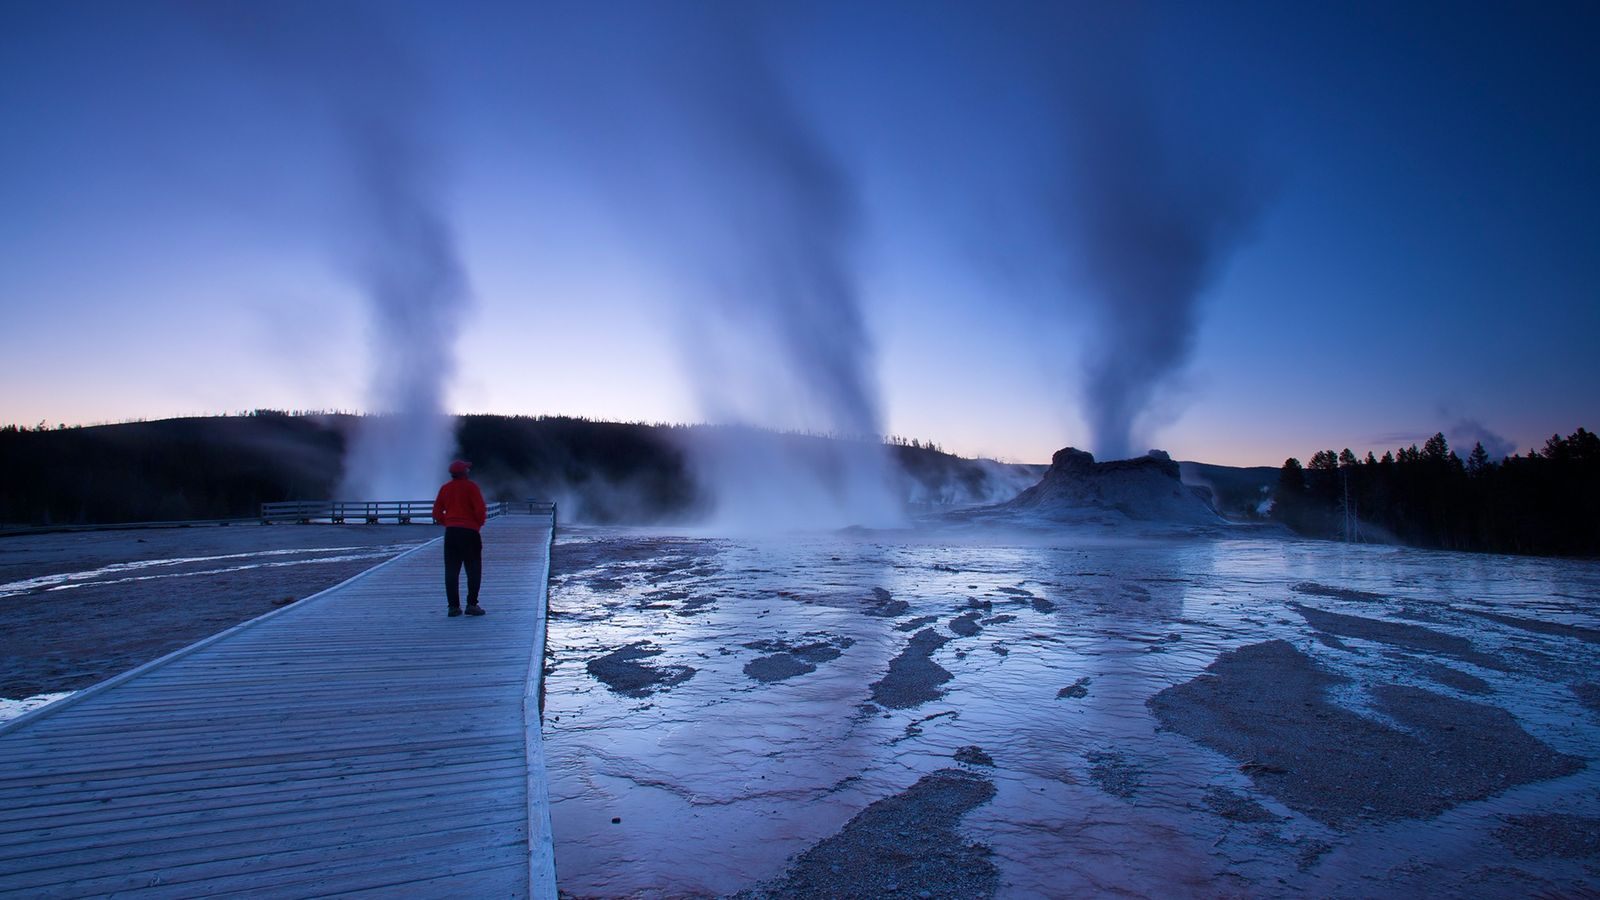 Steam rises at dusk at Castle Geyser in Yellowstone National Park.